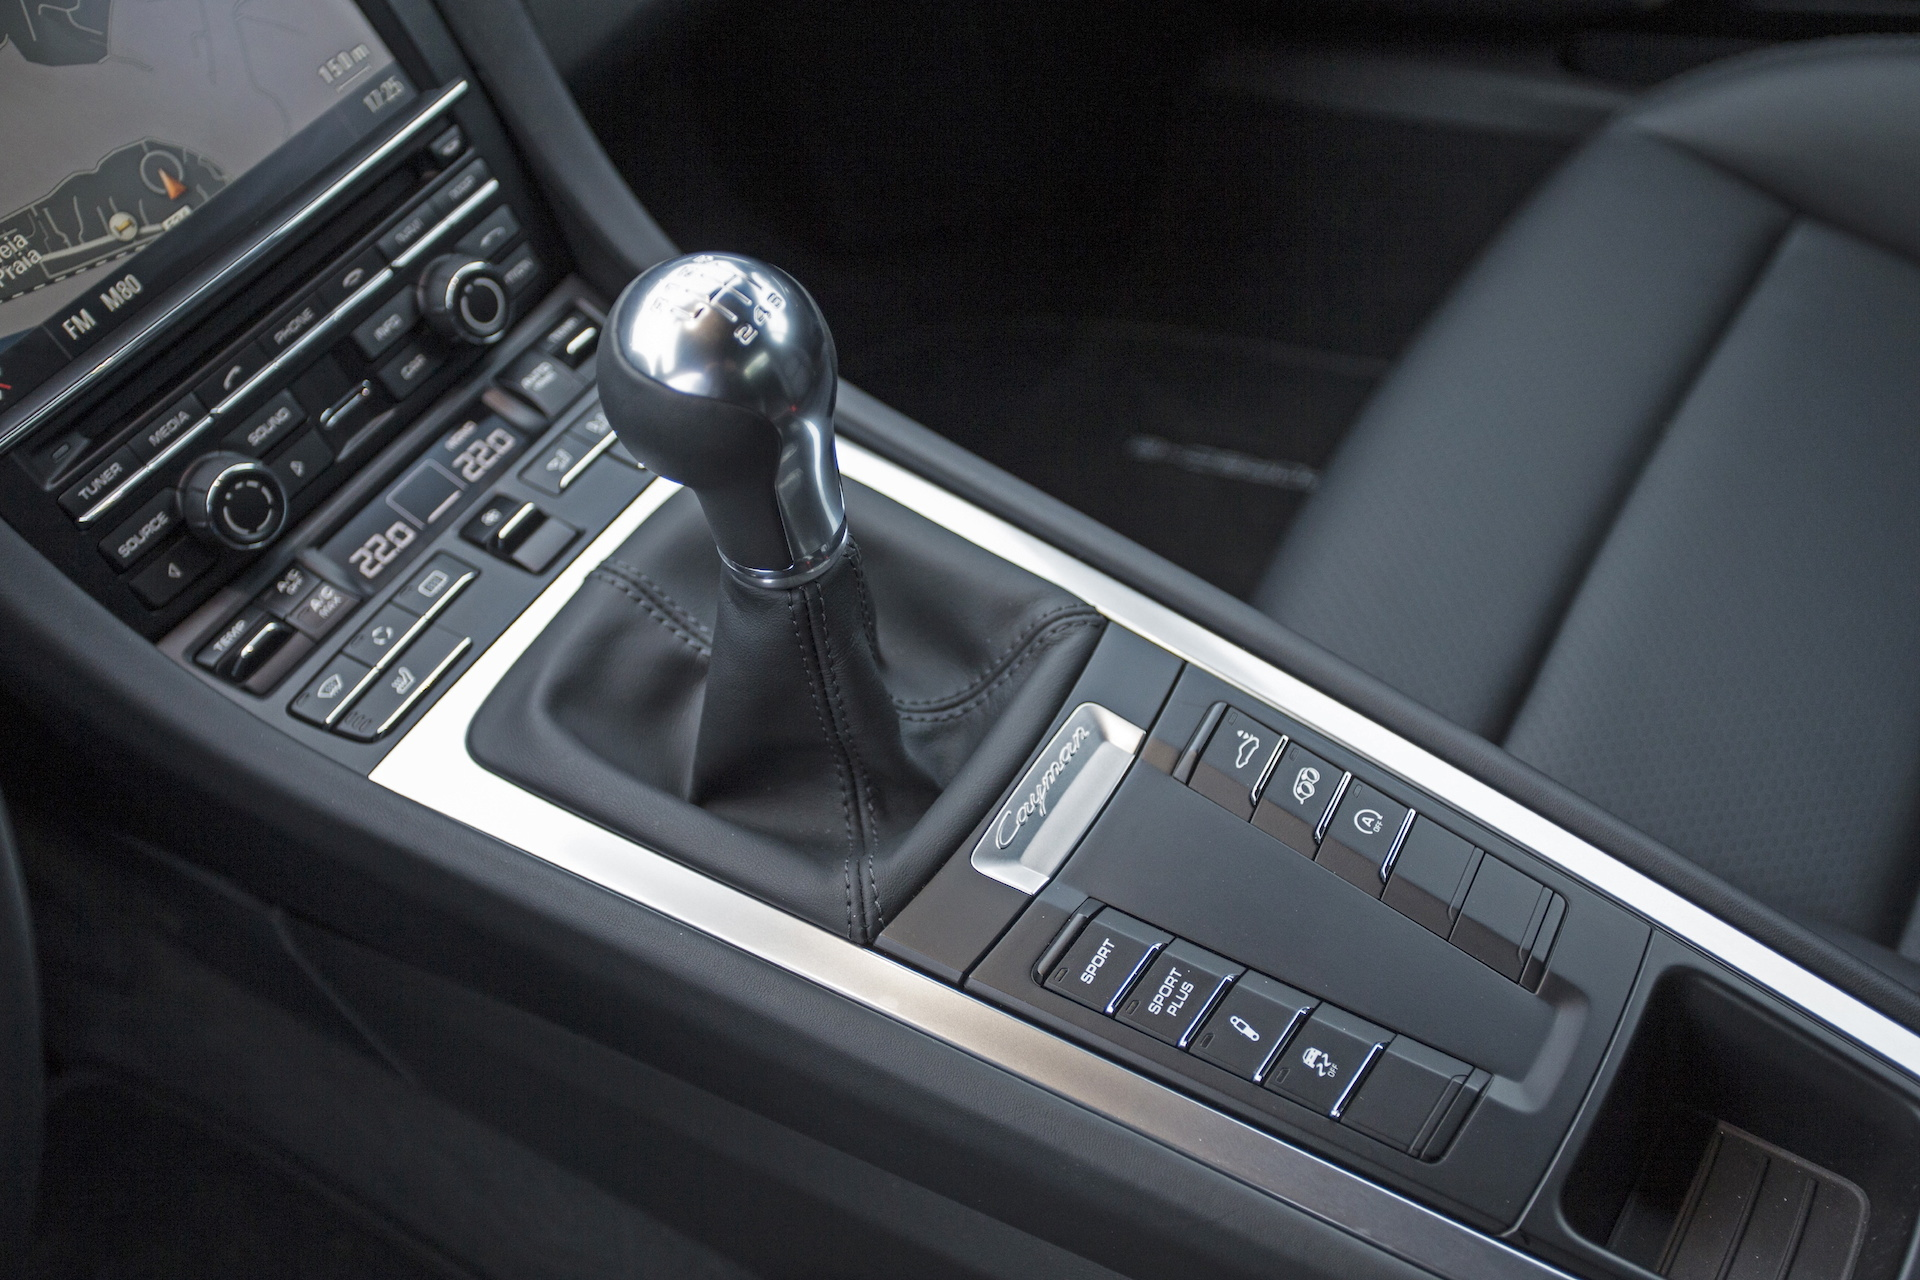 Gear Shift Lever : Readers say they want to giveashift with a manual